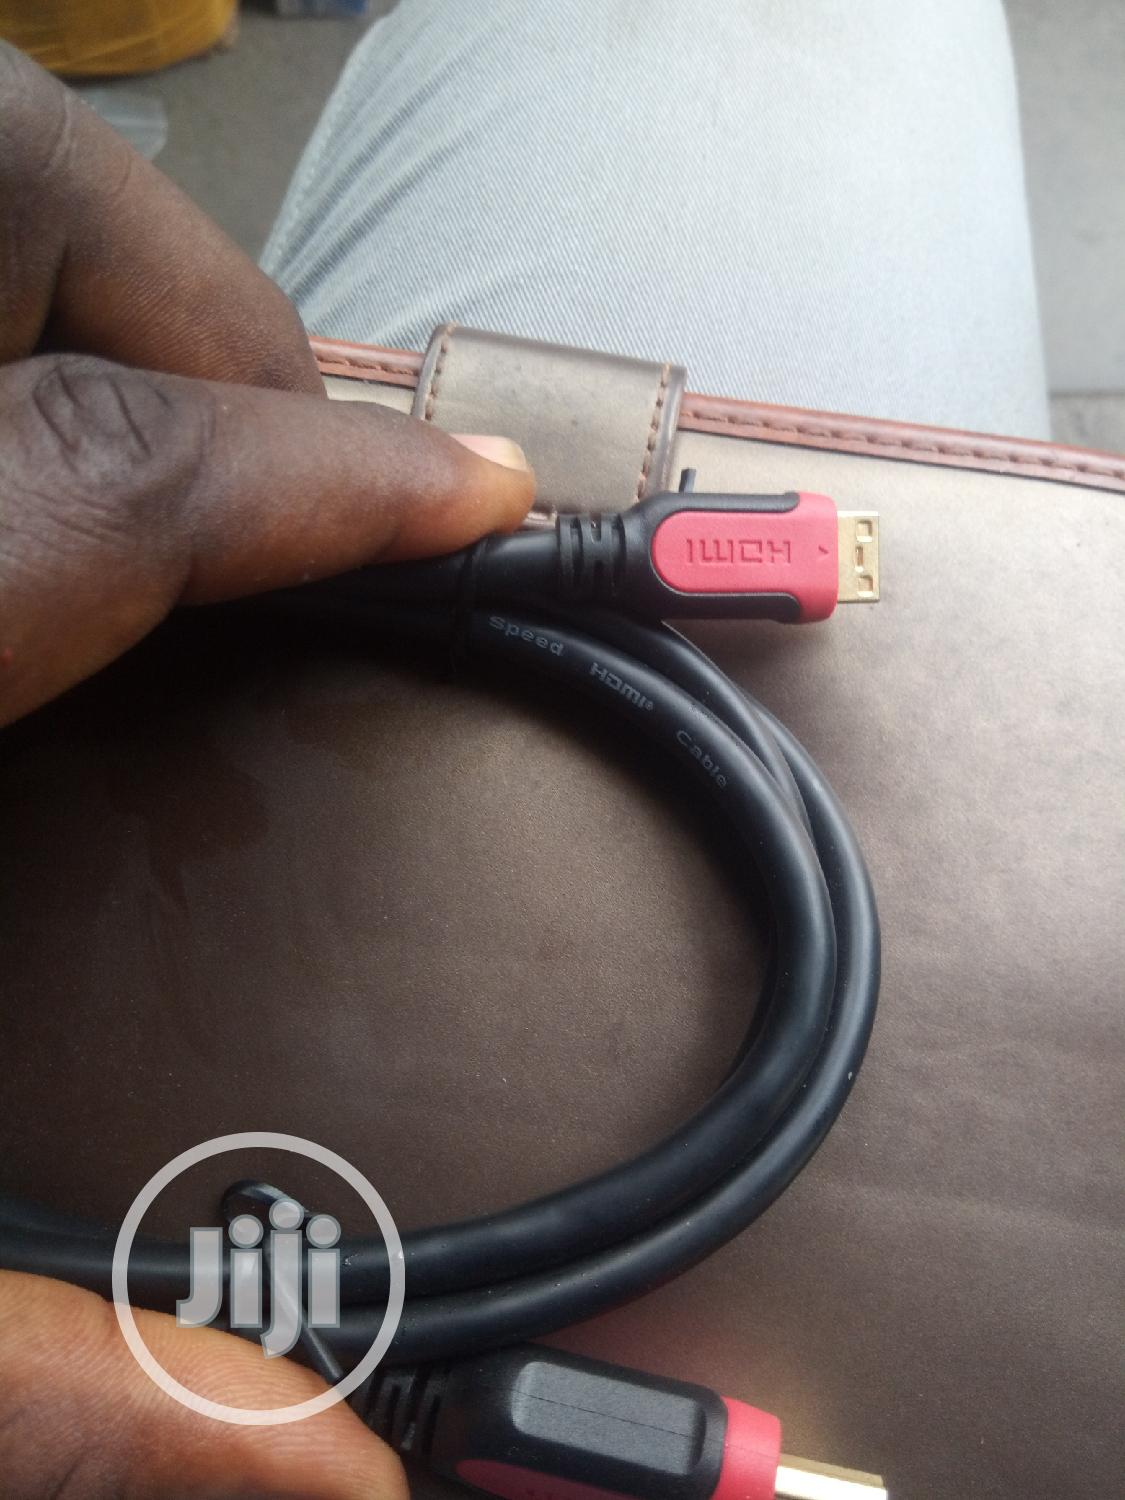 Hdmi To Micro HDMI Cable   Accessories & Supplies for Electronics for sale in Ikeja, Lagos State, Nigeria